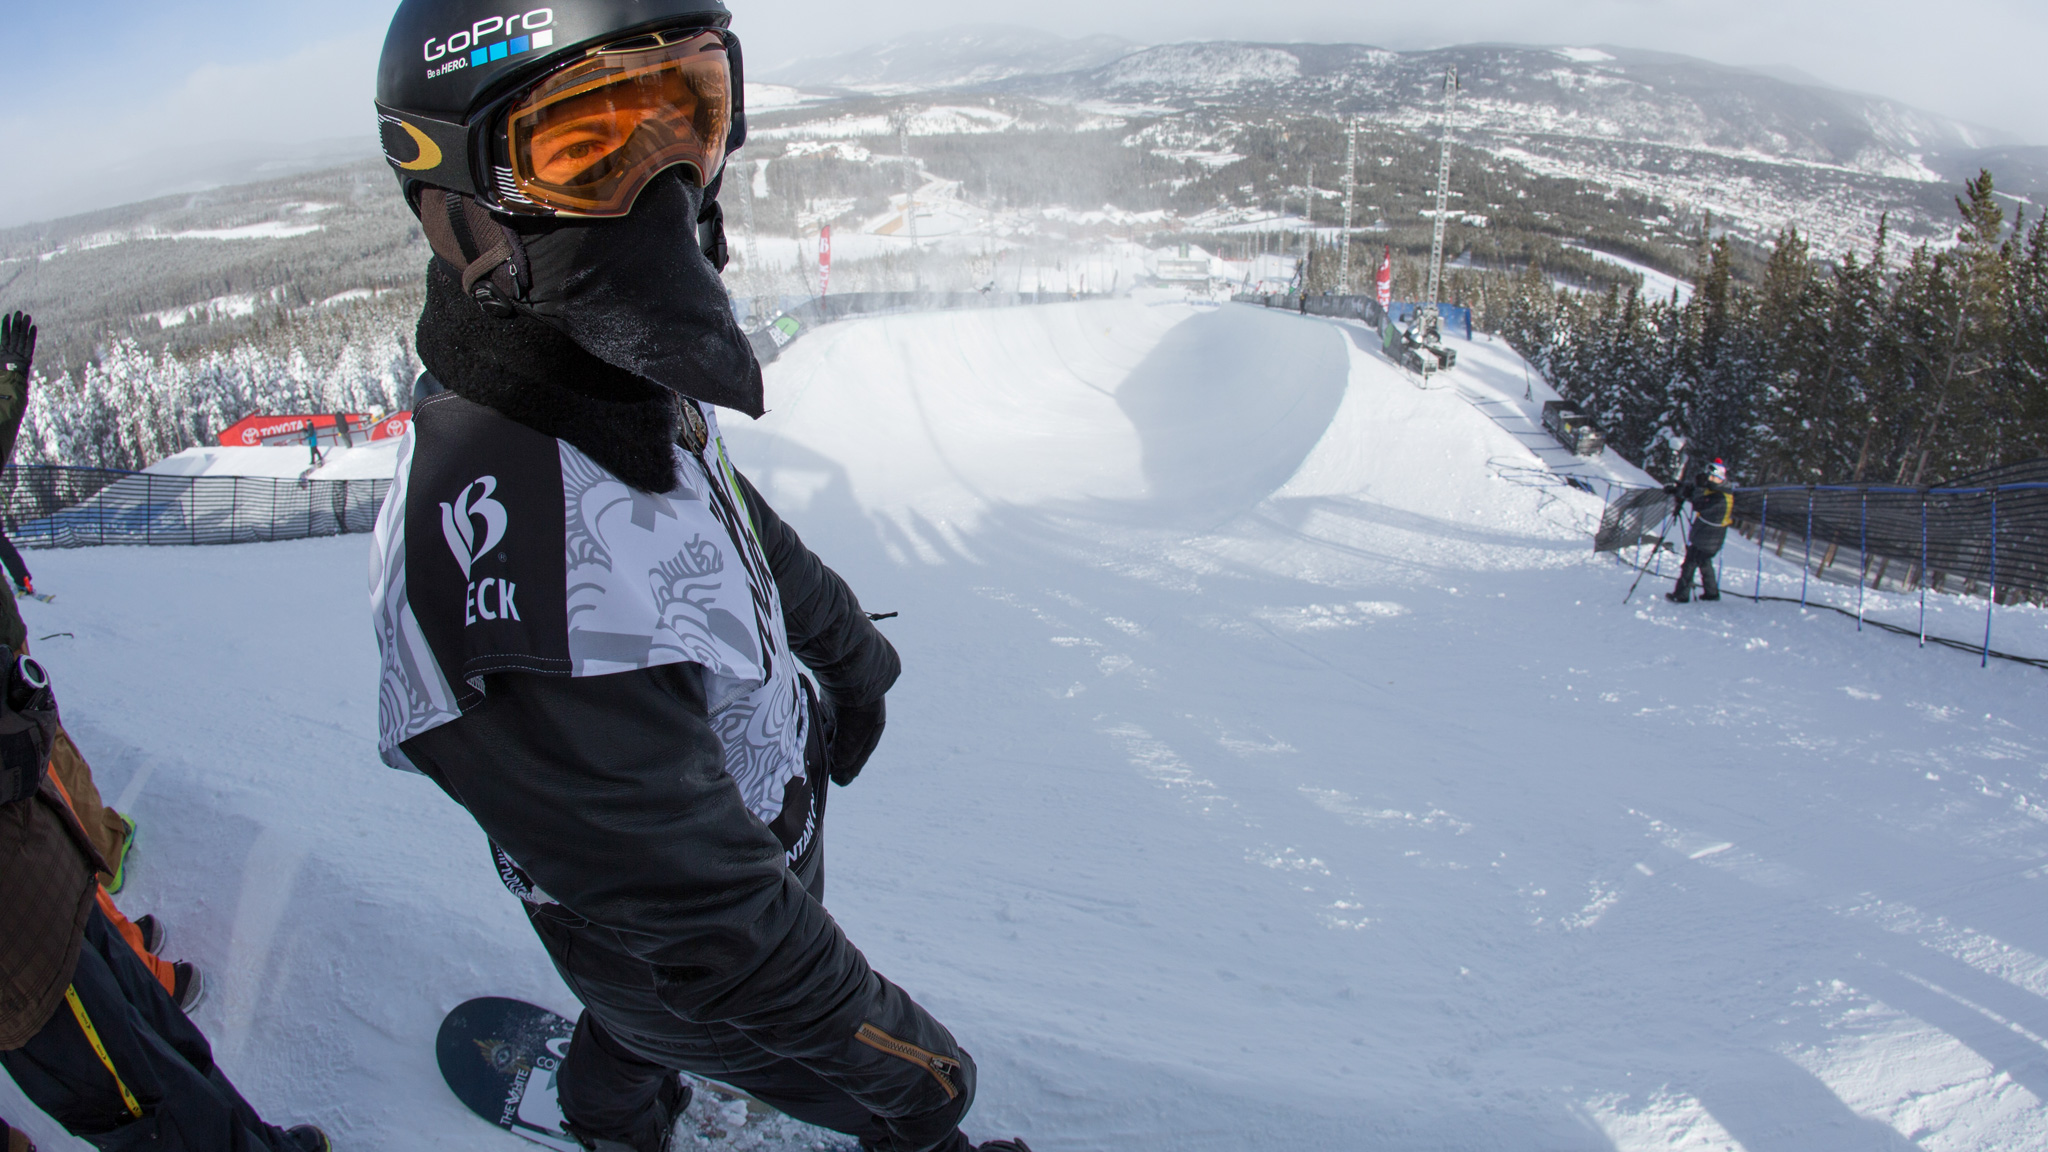 Shaun White, pictured here during practice earlier this week, qualified first in Thursday's halfpipe competition at the Breckenridge Dew Tour.